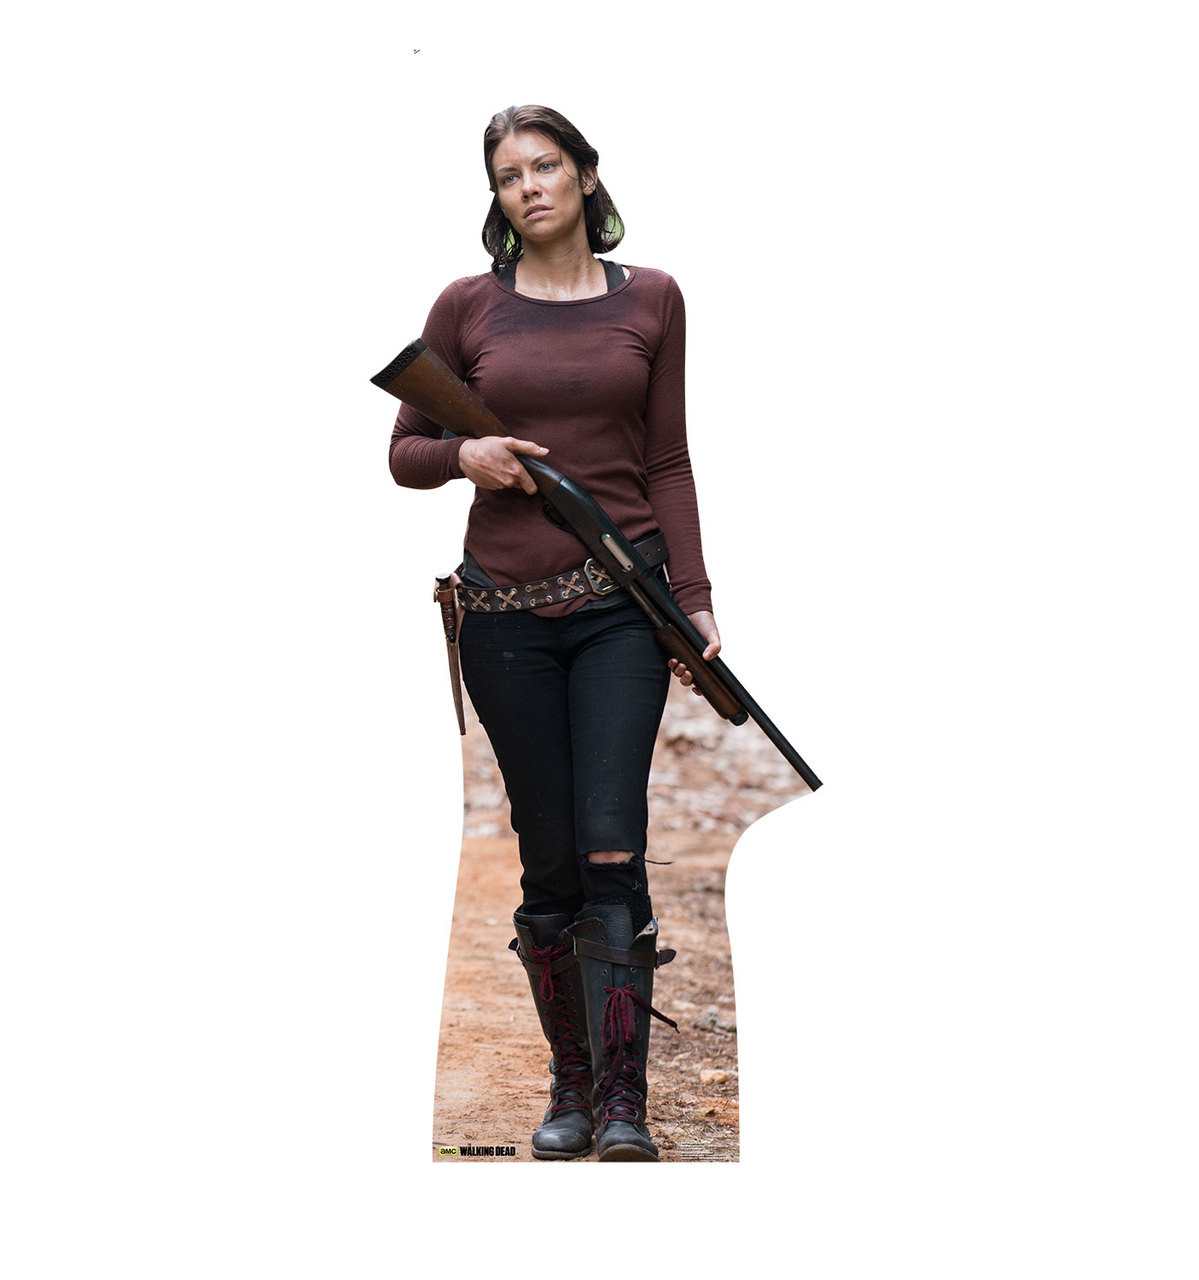 Life-size Maggie Greene  (The Walking Dead) Cardboard Standup